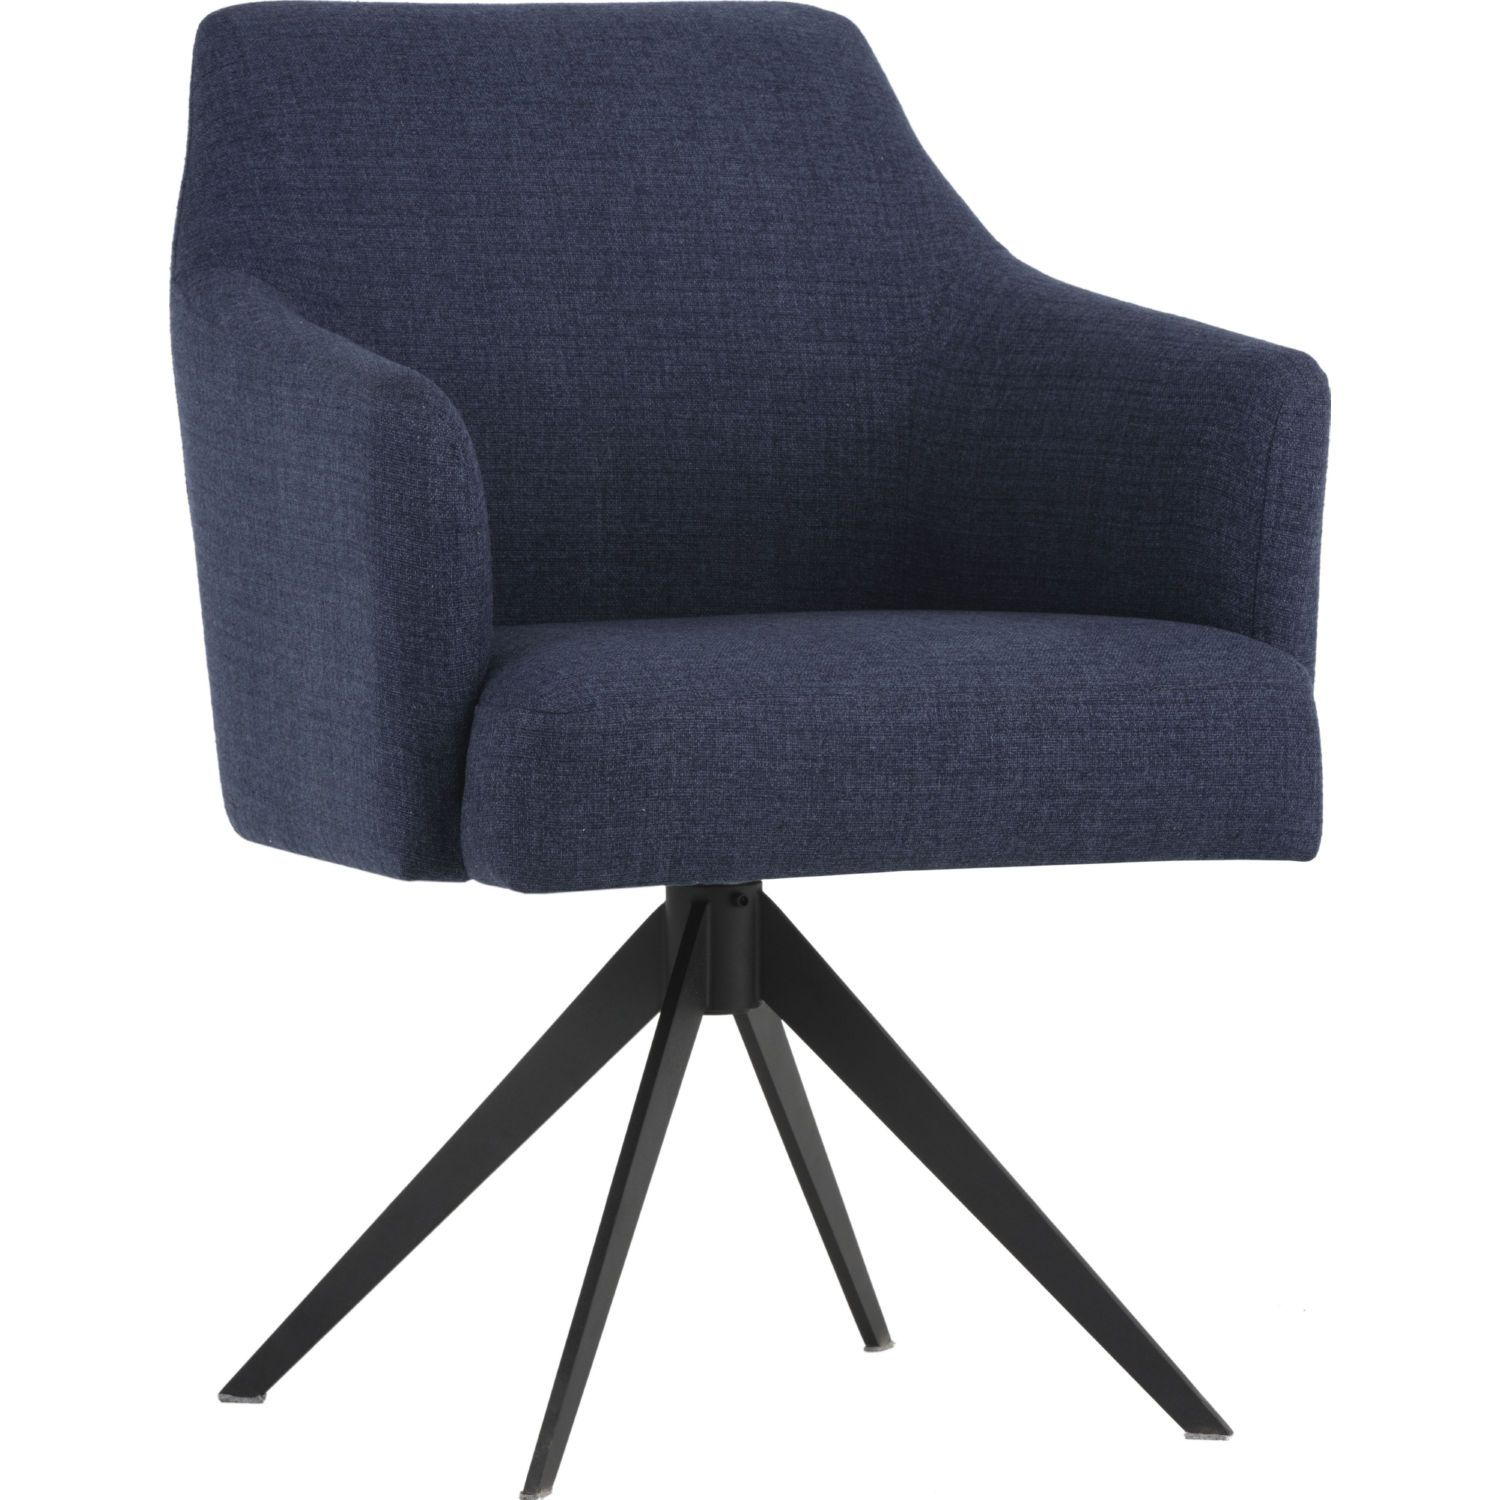 Sunpan 102826 Sydney Swivel Dining Chair Midnight Blue On Black